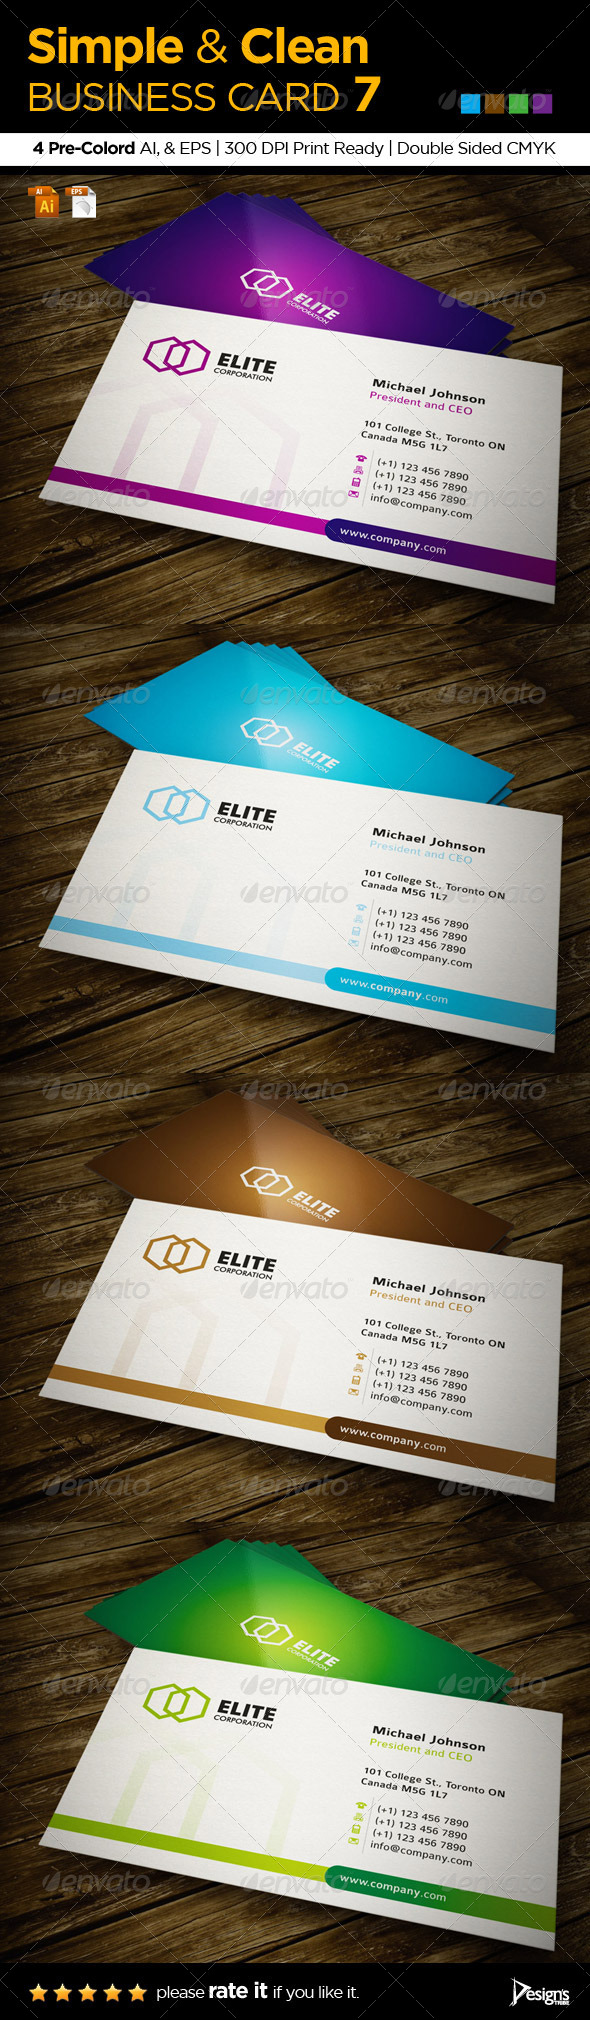 GraphicRiver Simple and Clean Business Card 7 5562807